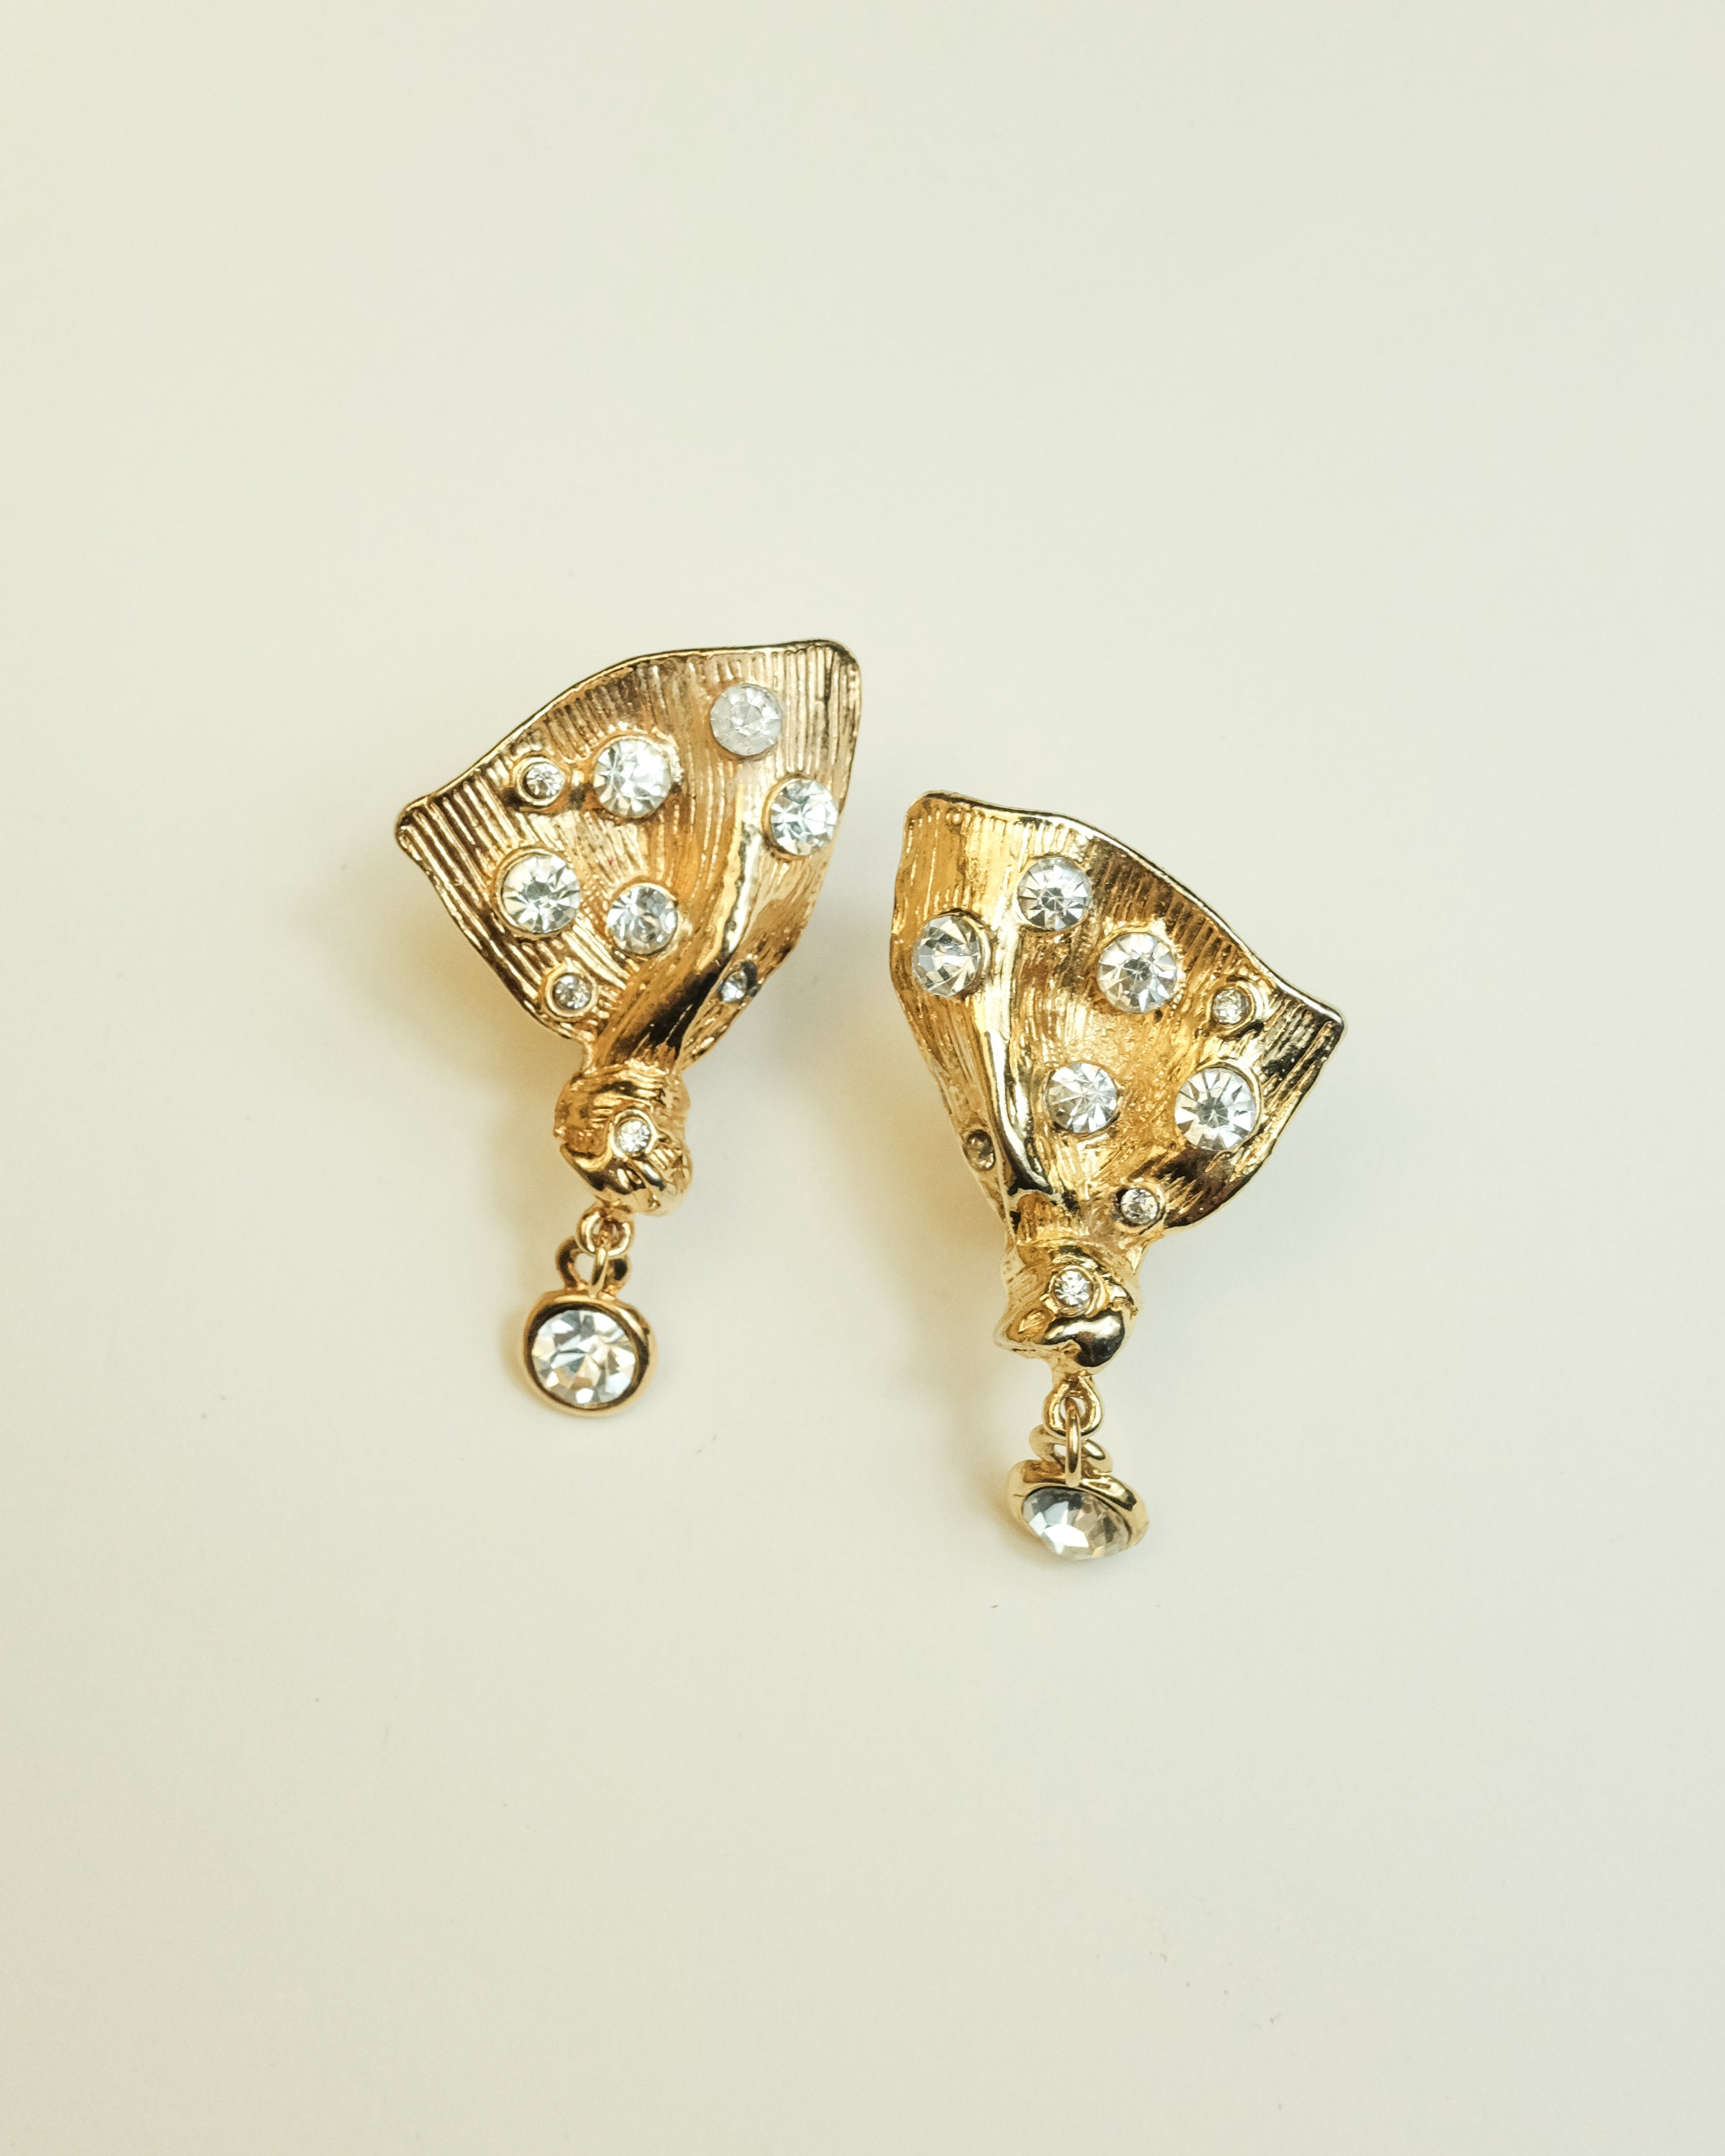 VINTAGE GOLD ABSTRACT CLIP-ON EARRINGS WITH CLEAR STONES